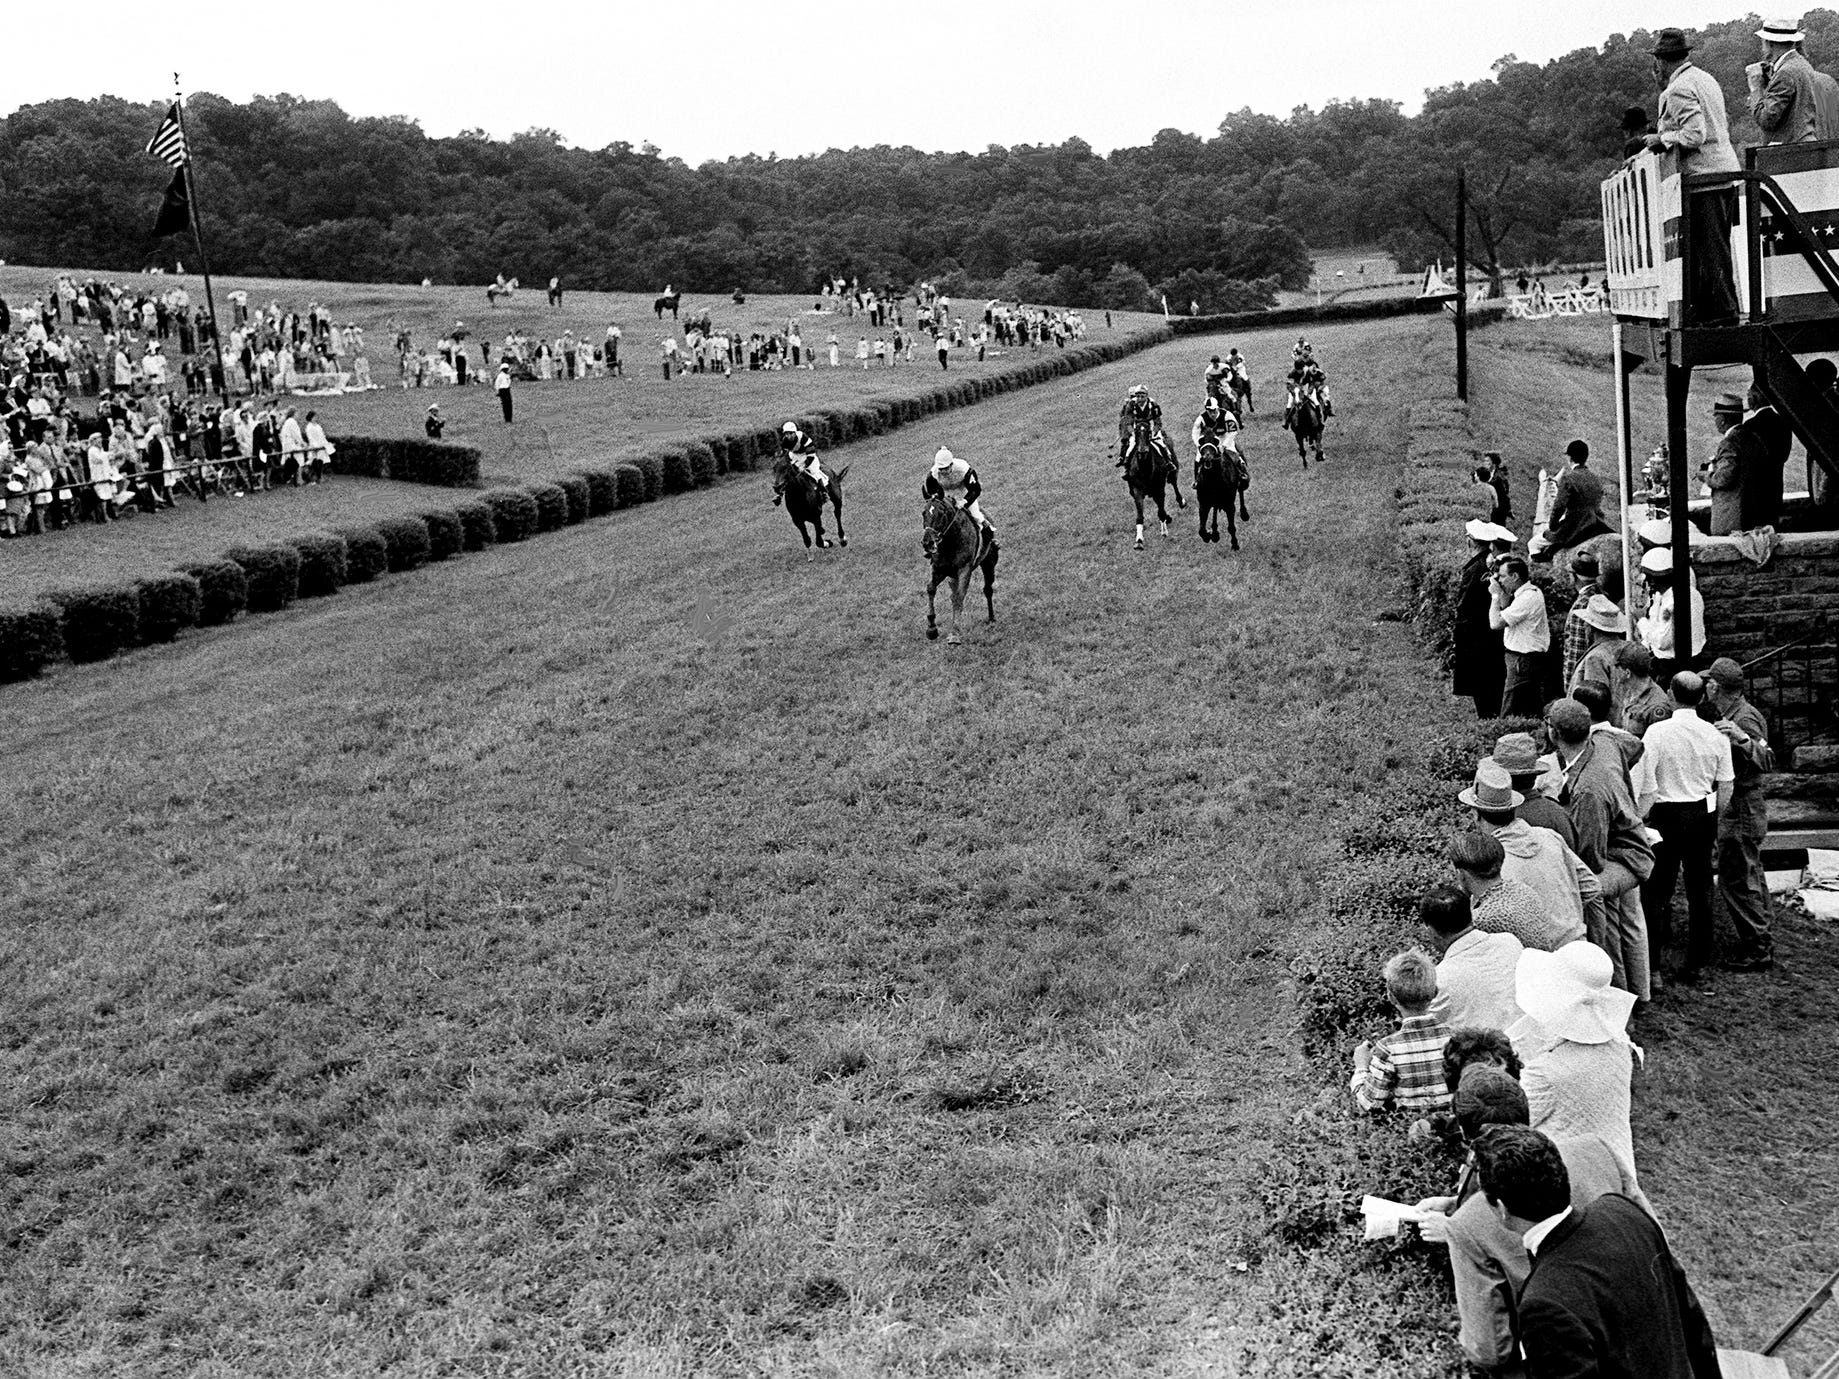 Appollon, with rider Kevin Freeman, is in the lead on the first pass of the judges stand during the Memorial Steeplechase, the main race of the 27th annual Iroquois Steeplechase, on May 11, 1968.